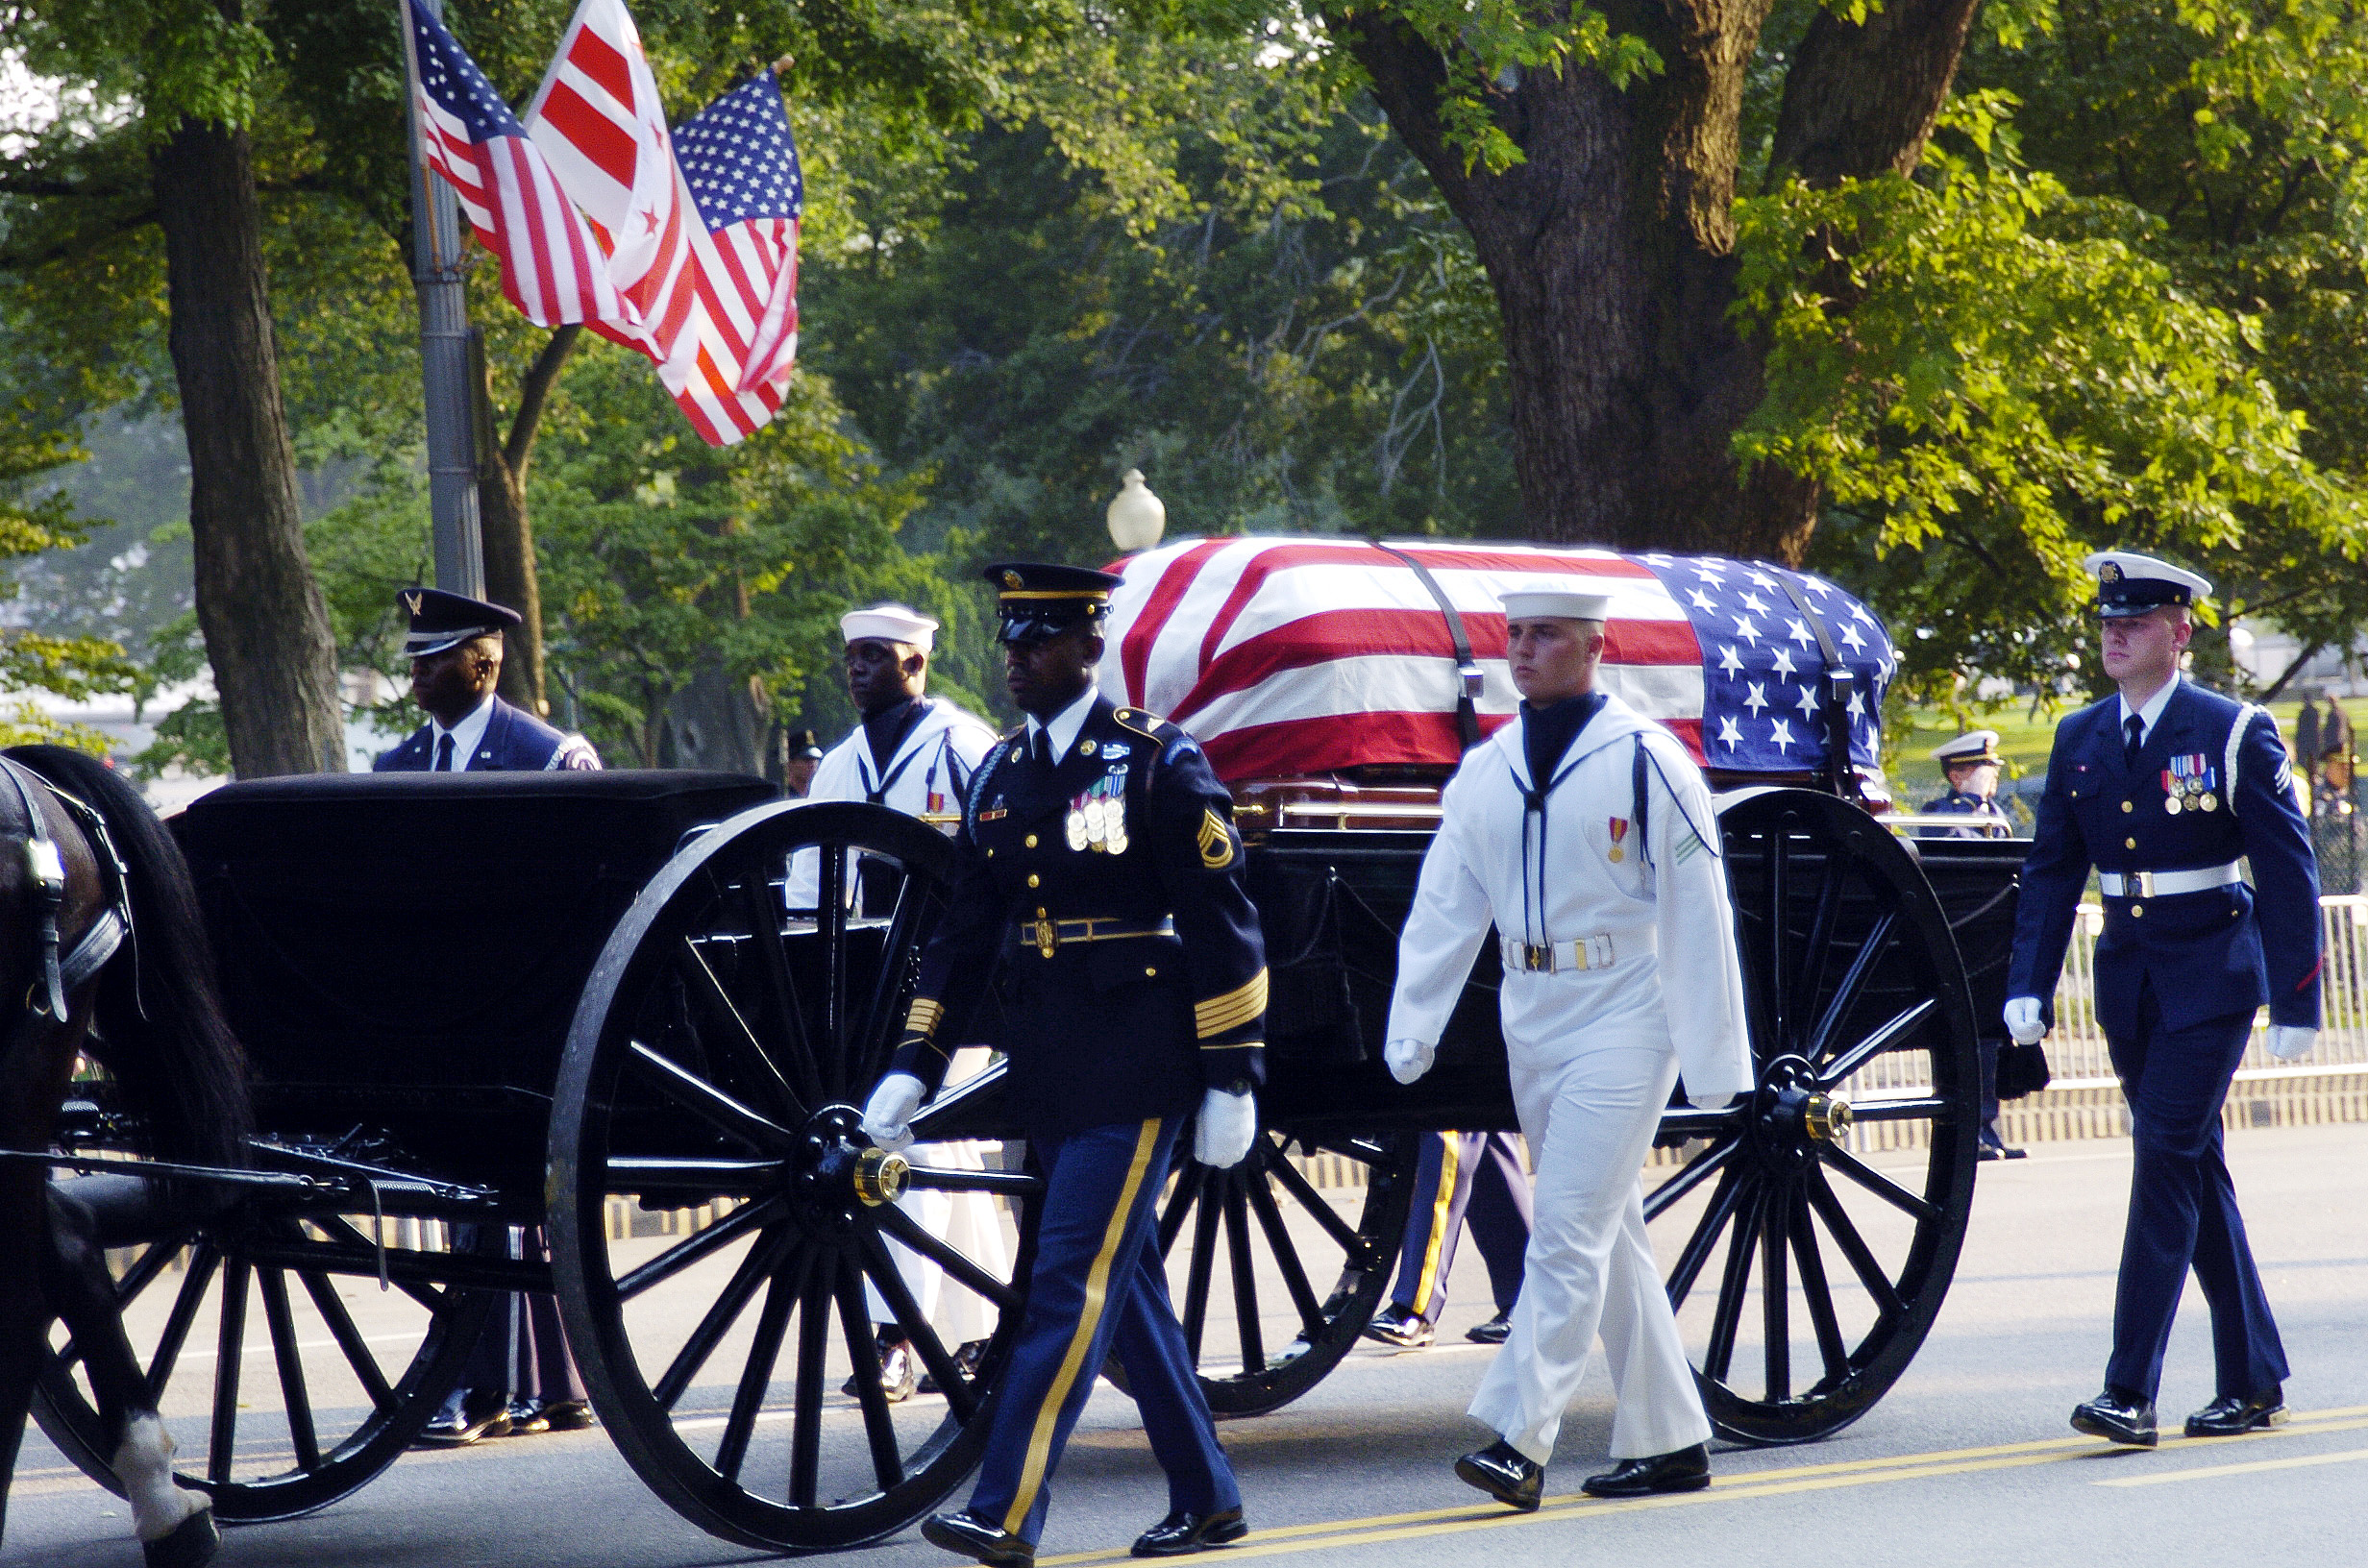 The Old Guard of the Army's 3rd U.S. Infantry Regiment transports the flag-draped casket of former President Ronald Reagan on a caisson to the Capitol. U.S. Navy photo by Chief Journalist Dave Fliesen on June 9, 2004.